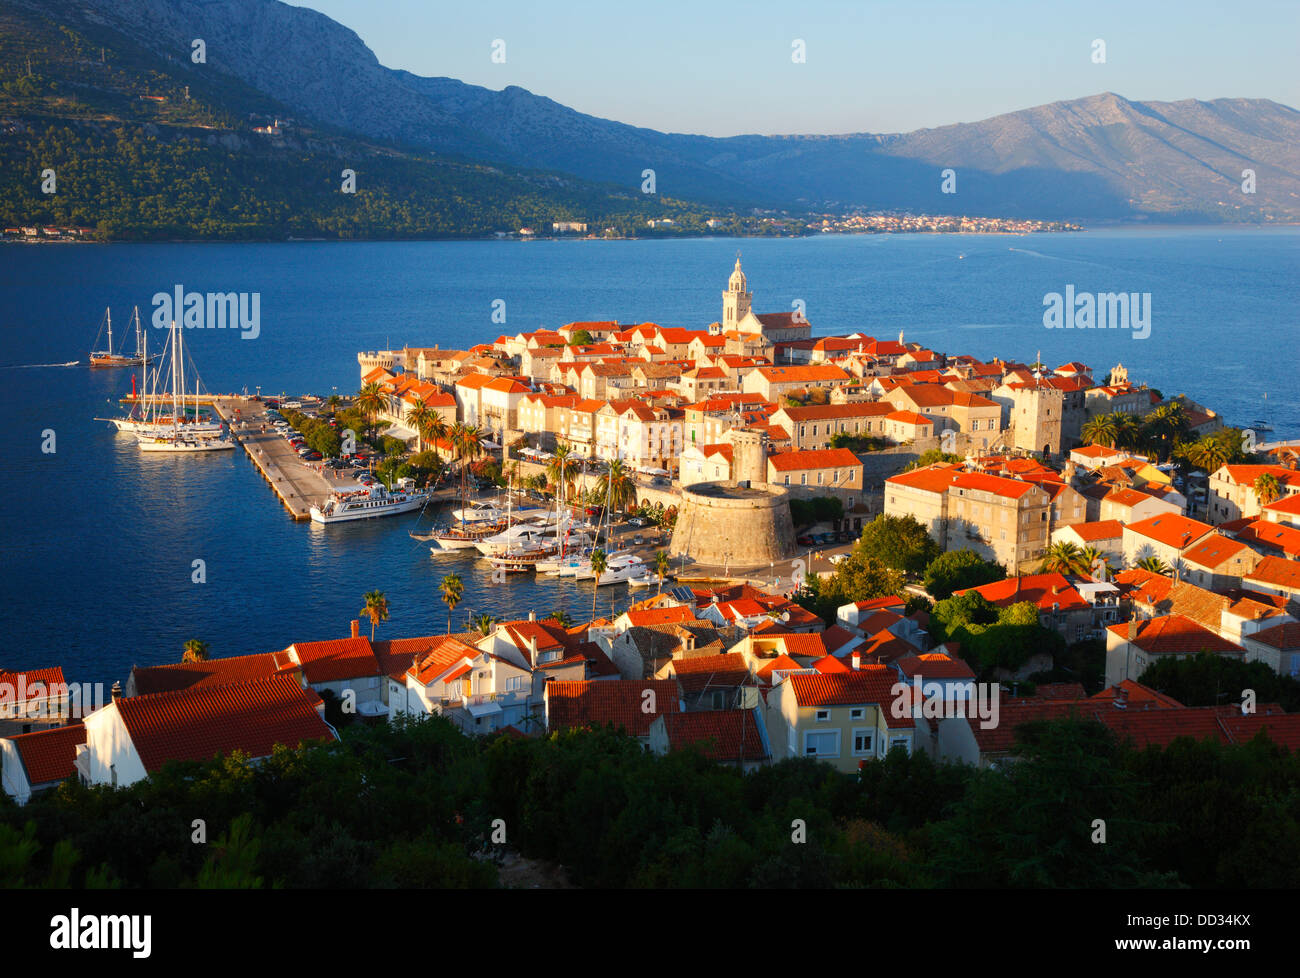 Korcula old town. Peninsula Peljesac in the background. - Stock Image